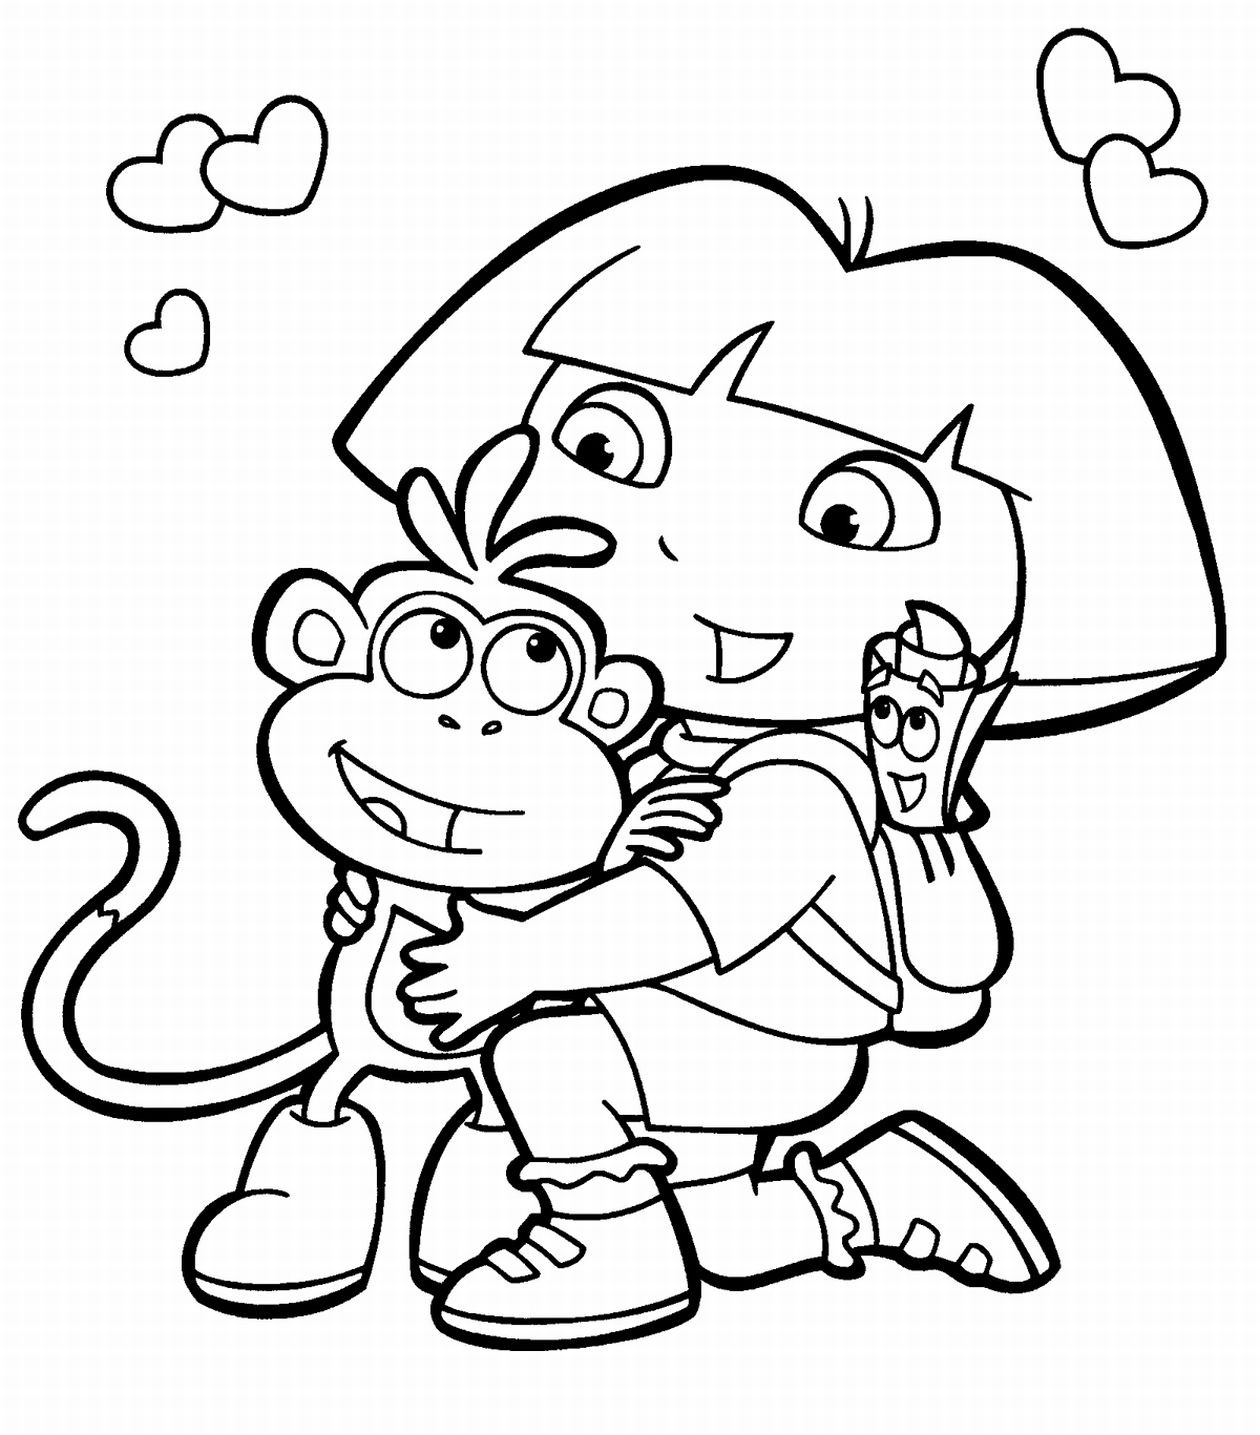 Kids Drawing On Line at GetDrawings.com | Free for personal use Kids ...